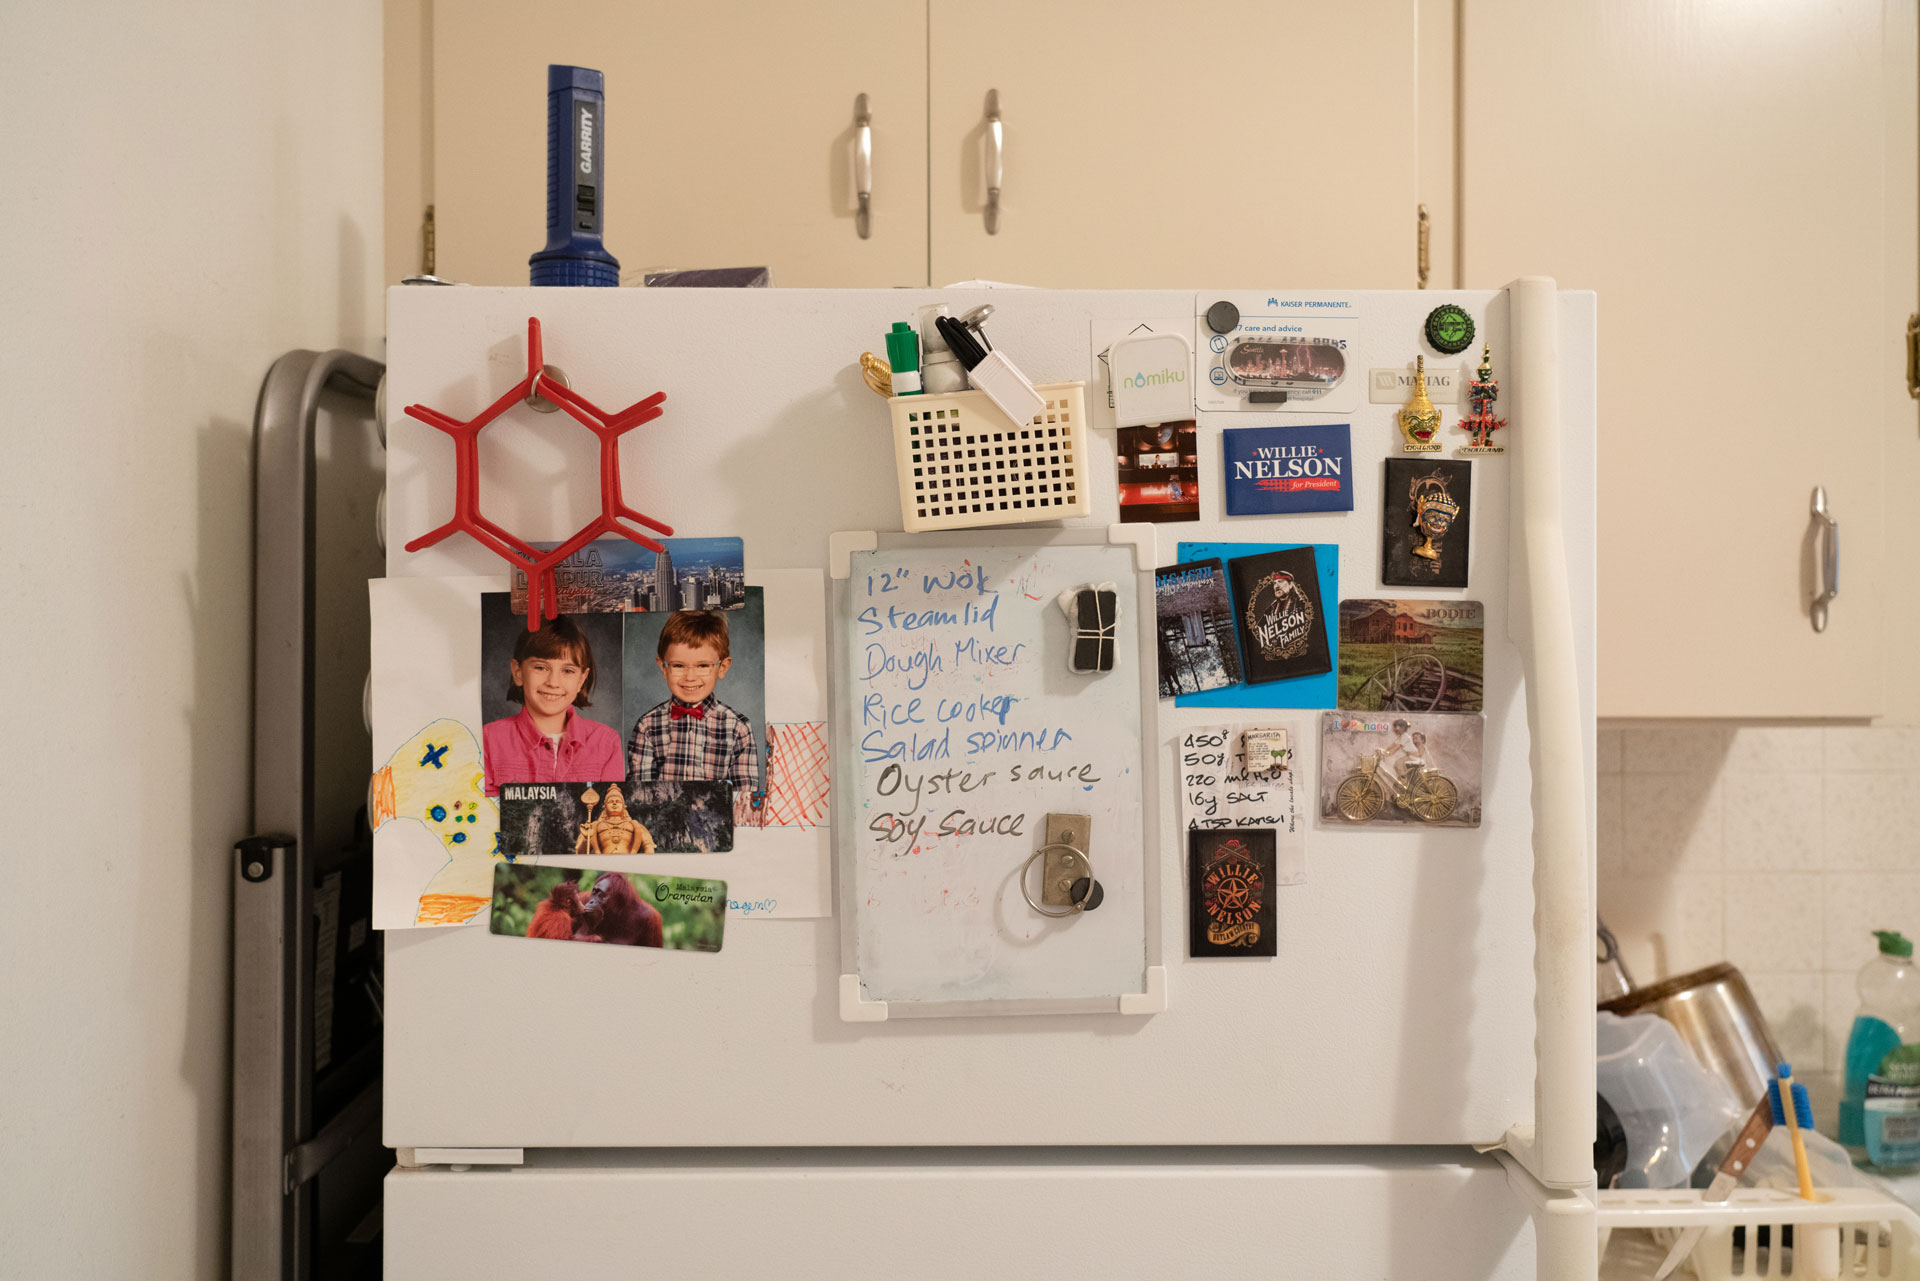 Postcards, photos, magnets and a shopping list cover the freezer door of a white refrigerator.